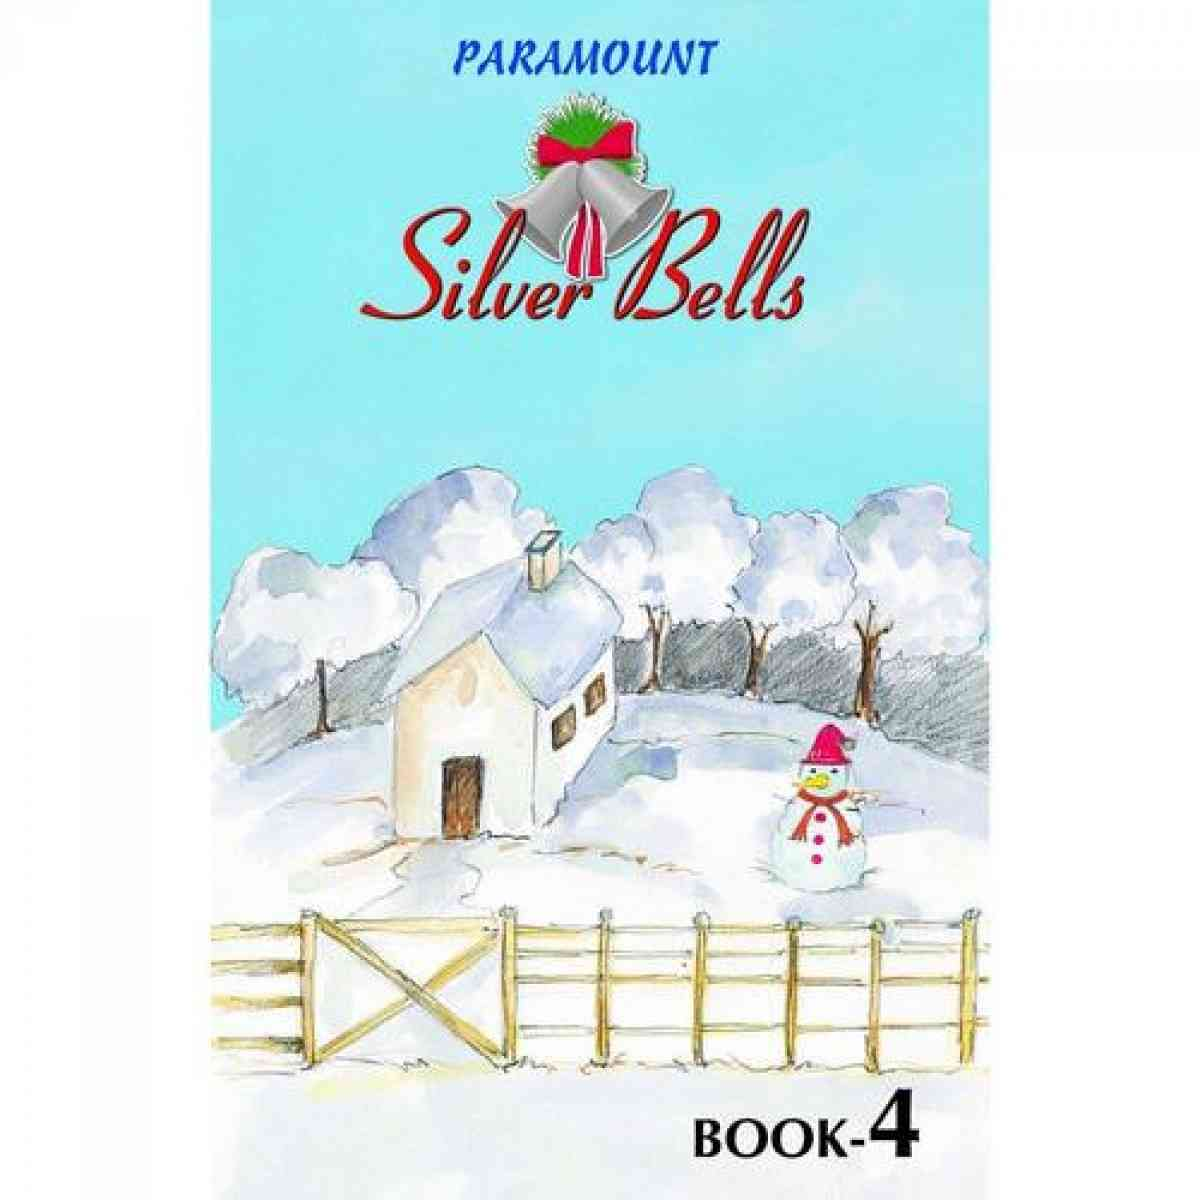 Paramount Silver Bells: Book 4